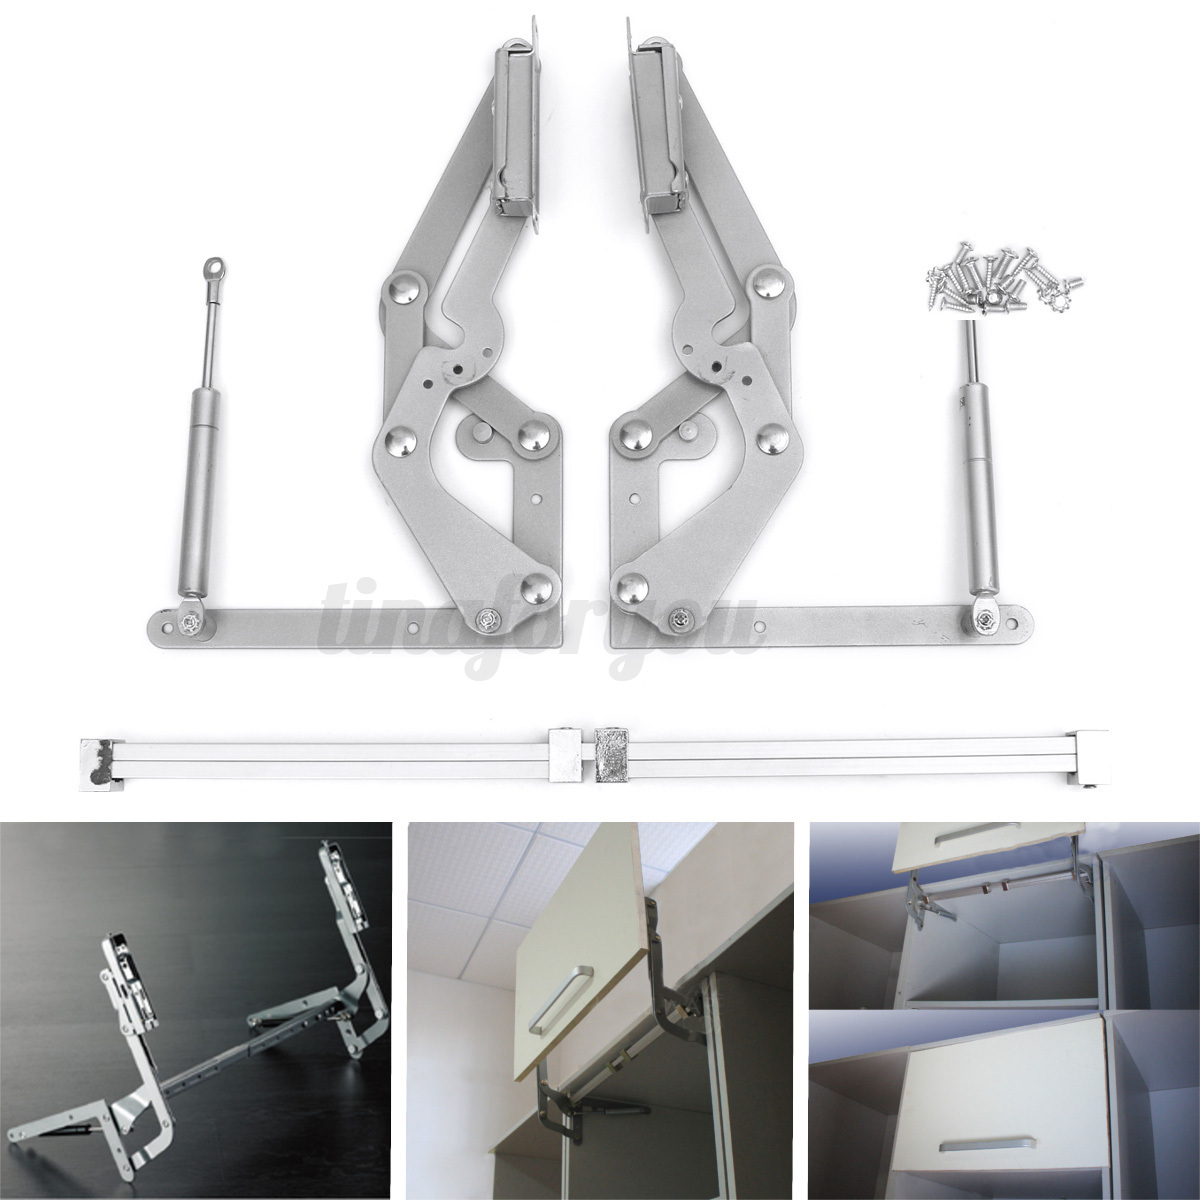 Lift Up Kitchen Cabinet Hinges: 2 Cabinet Door Vertical Swing Lift Up Stay Pneumatic Arm